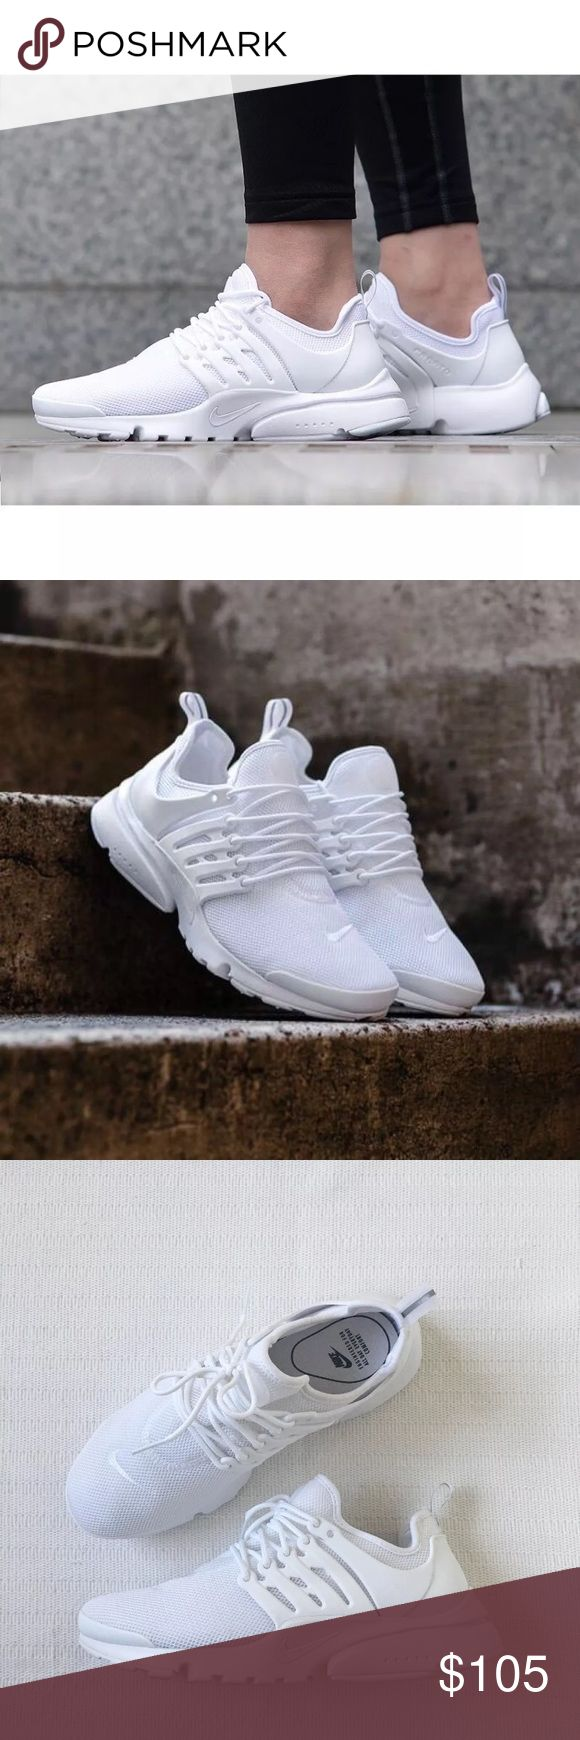 Women's Nike Air Presto Ultra BR Running Shoes Women's Nike Air Presto Ultra BR Running Shoes are lightweight and ultra fast, you'll fly free in these innovative sneakers. Style/Color: 896277-100  • Women's size 7.5  • NEW in box (no lid) • No trades •100% authentic Nike Shoes Sneakers